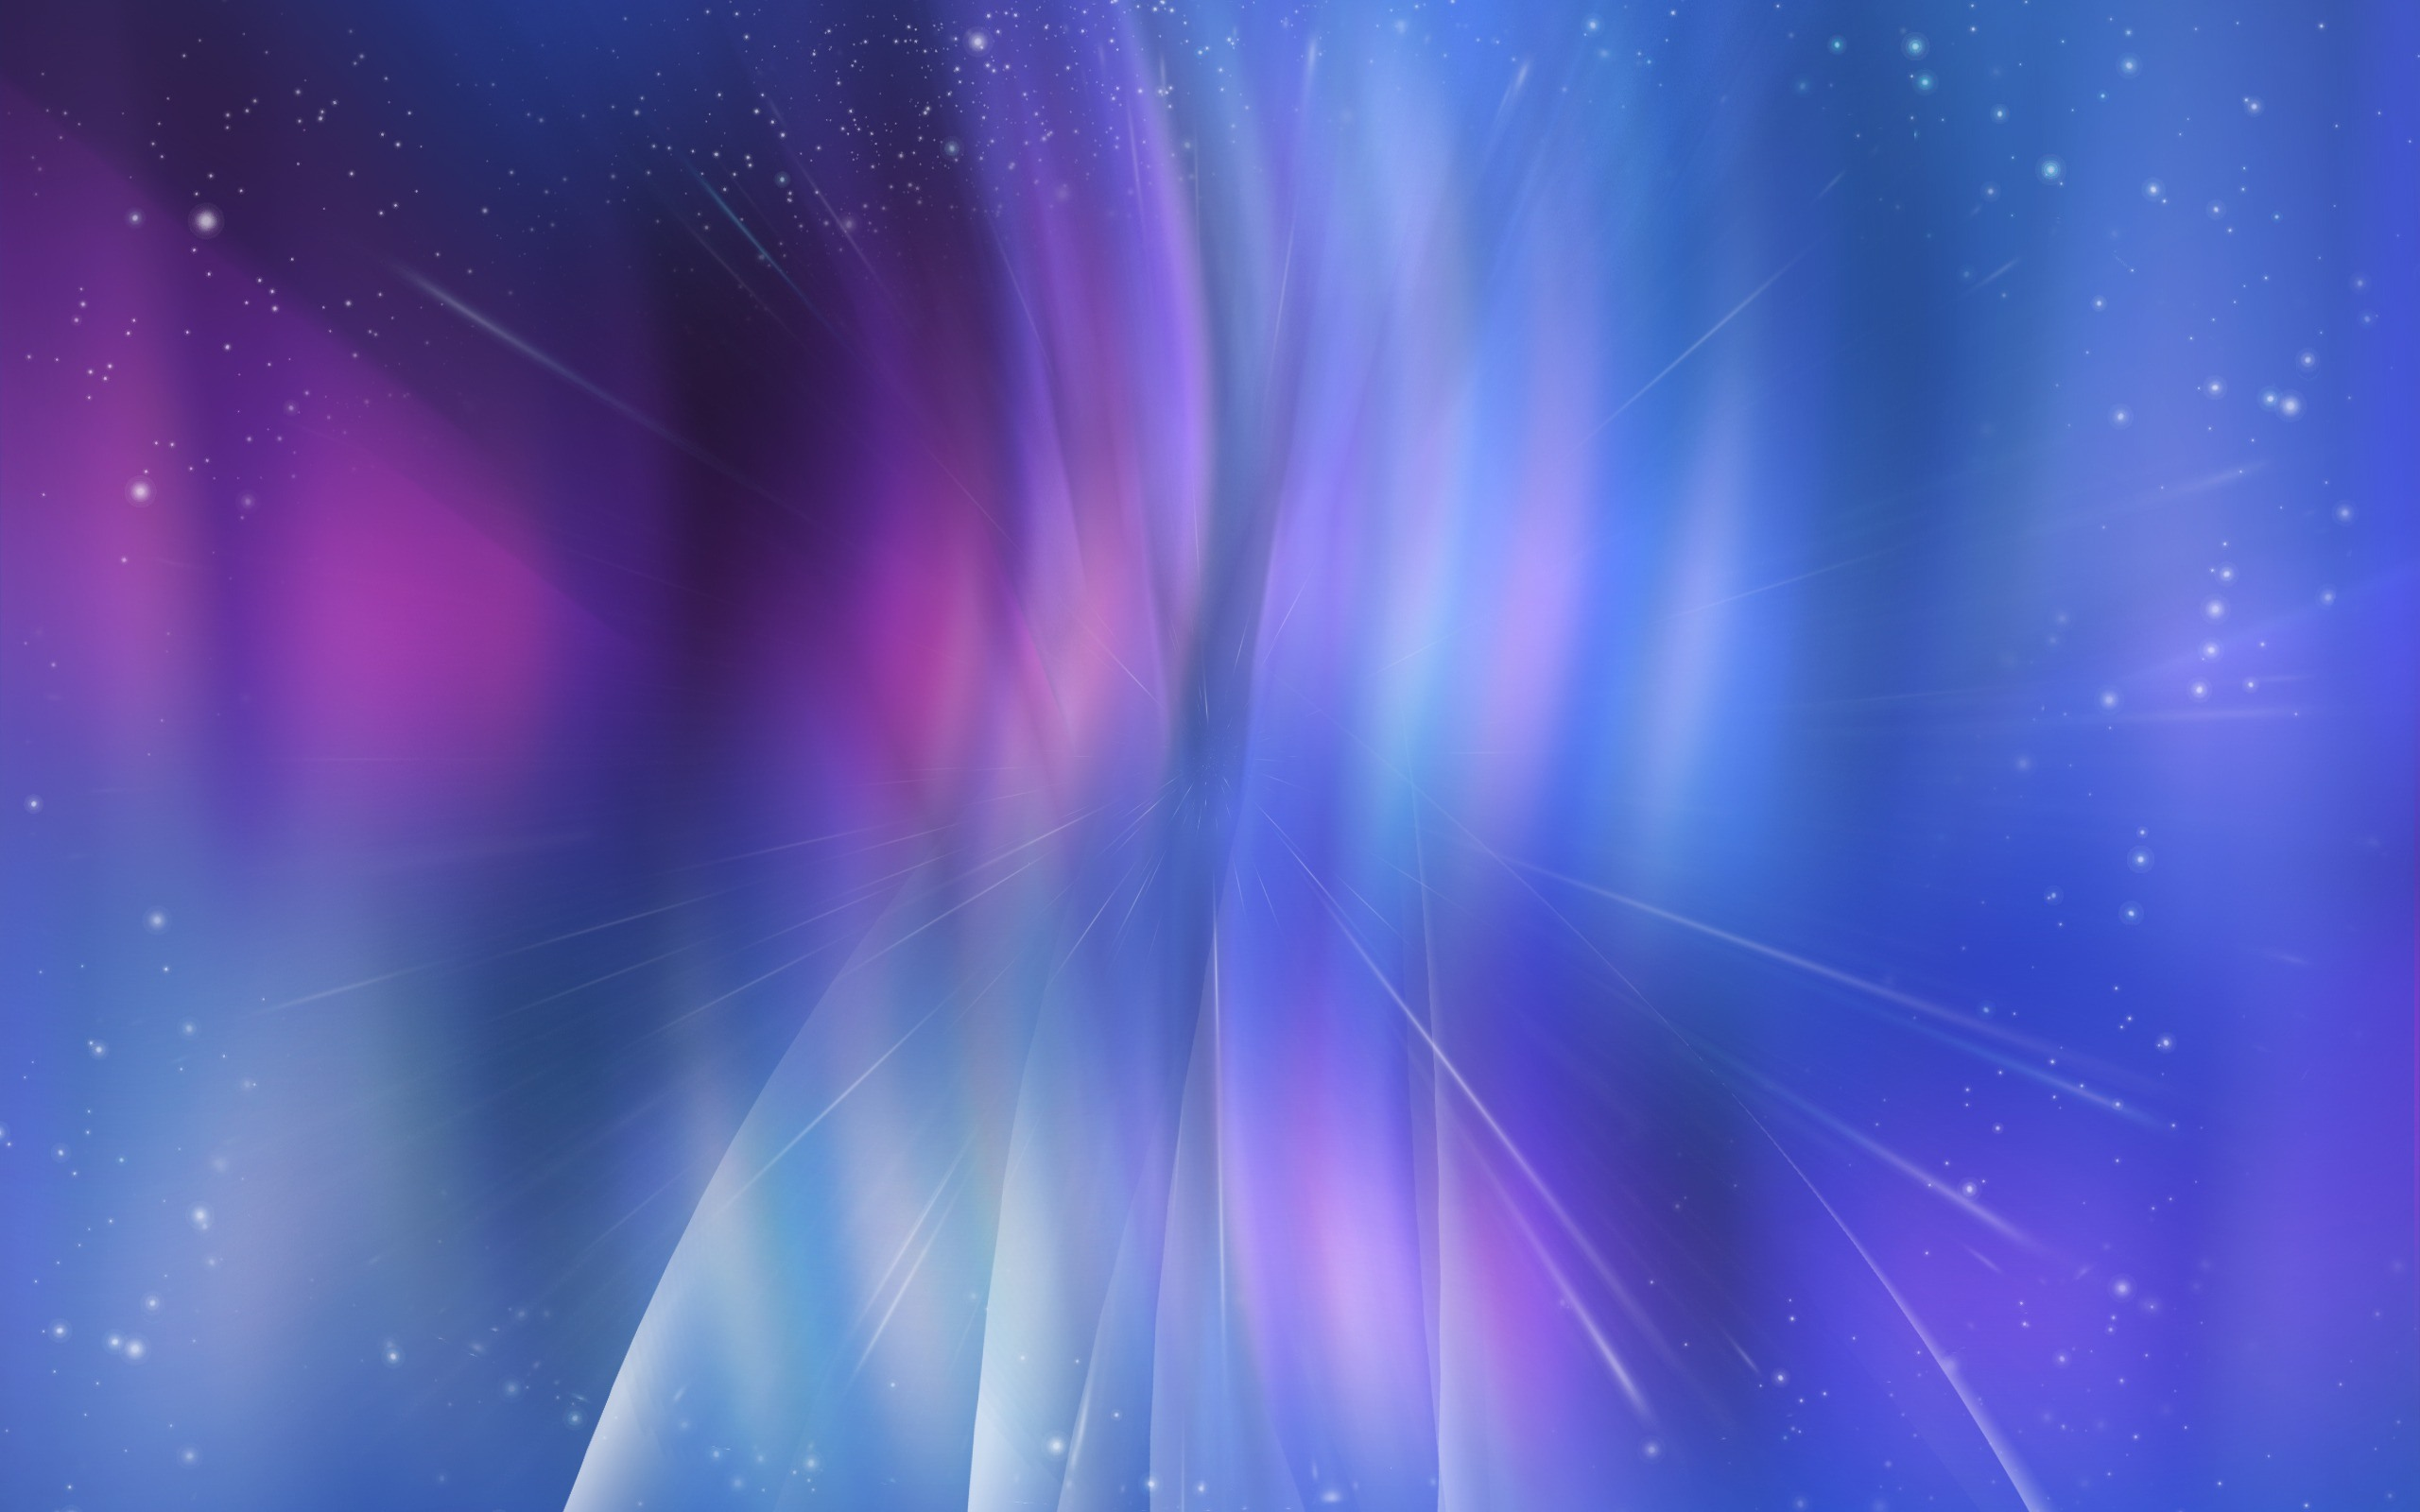 Purple And Blue Backgrounds - WallpaperSafari